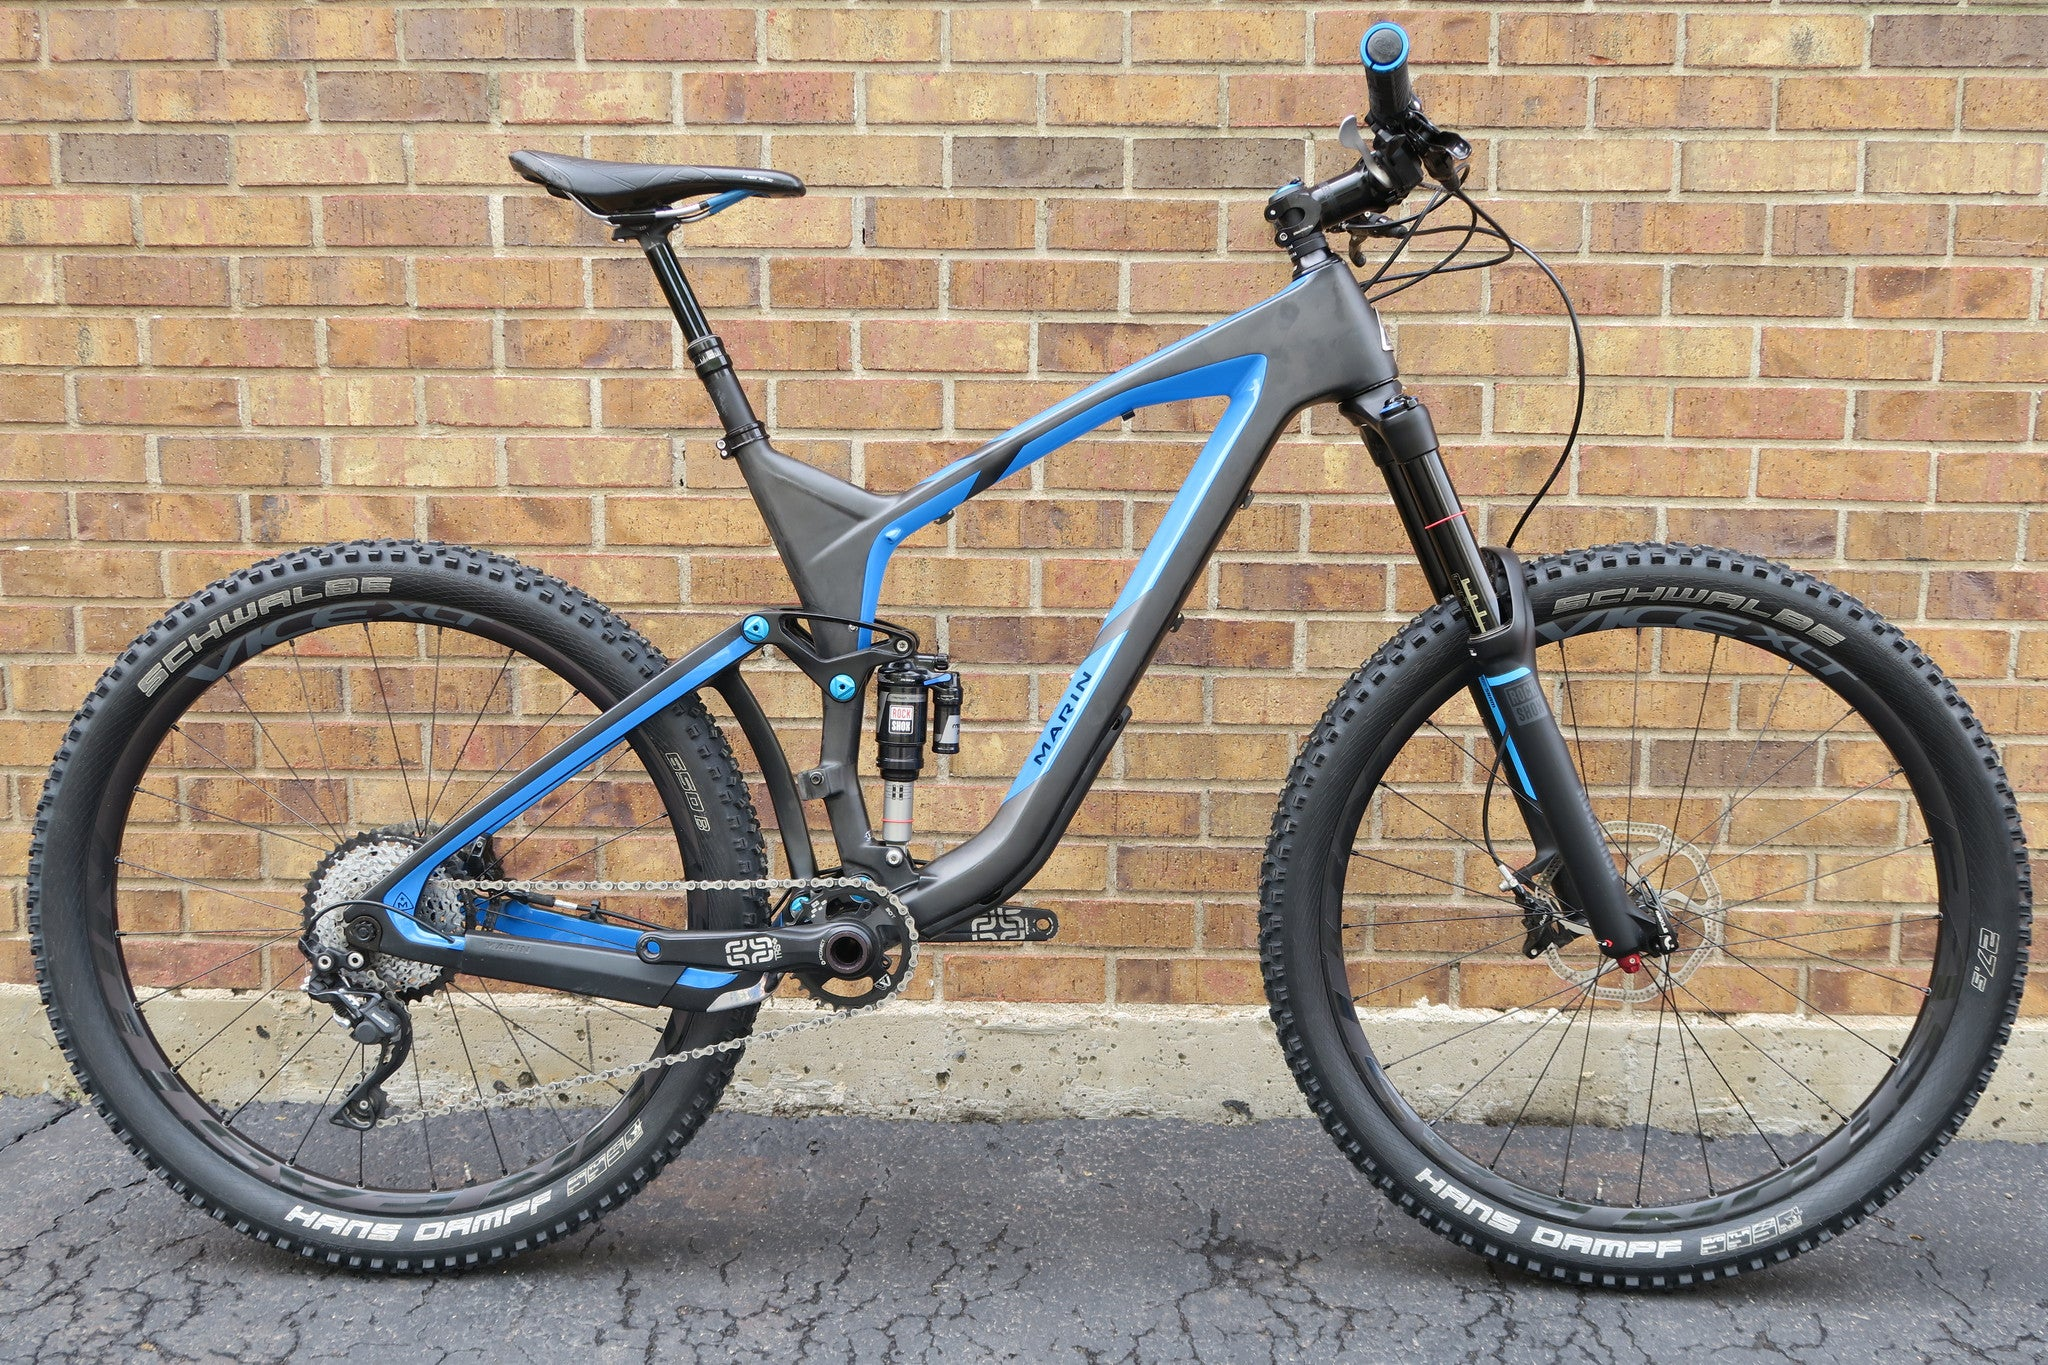 2014 MARIN ATTACK TRAIL XT9